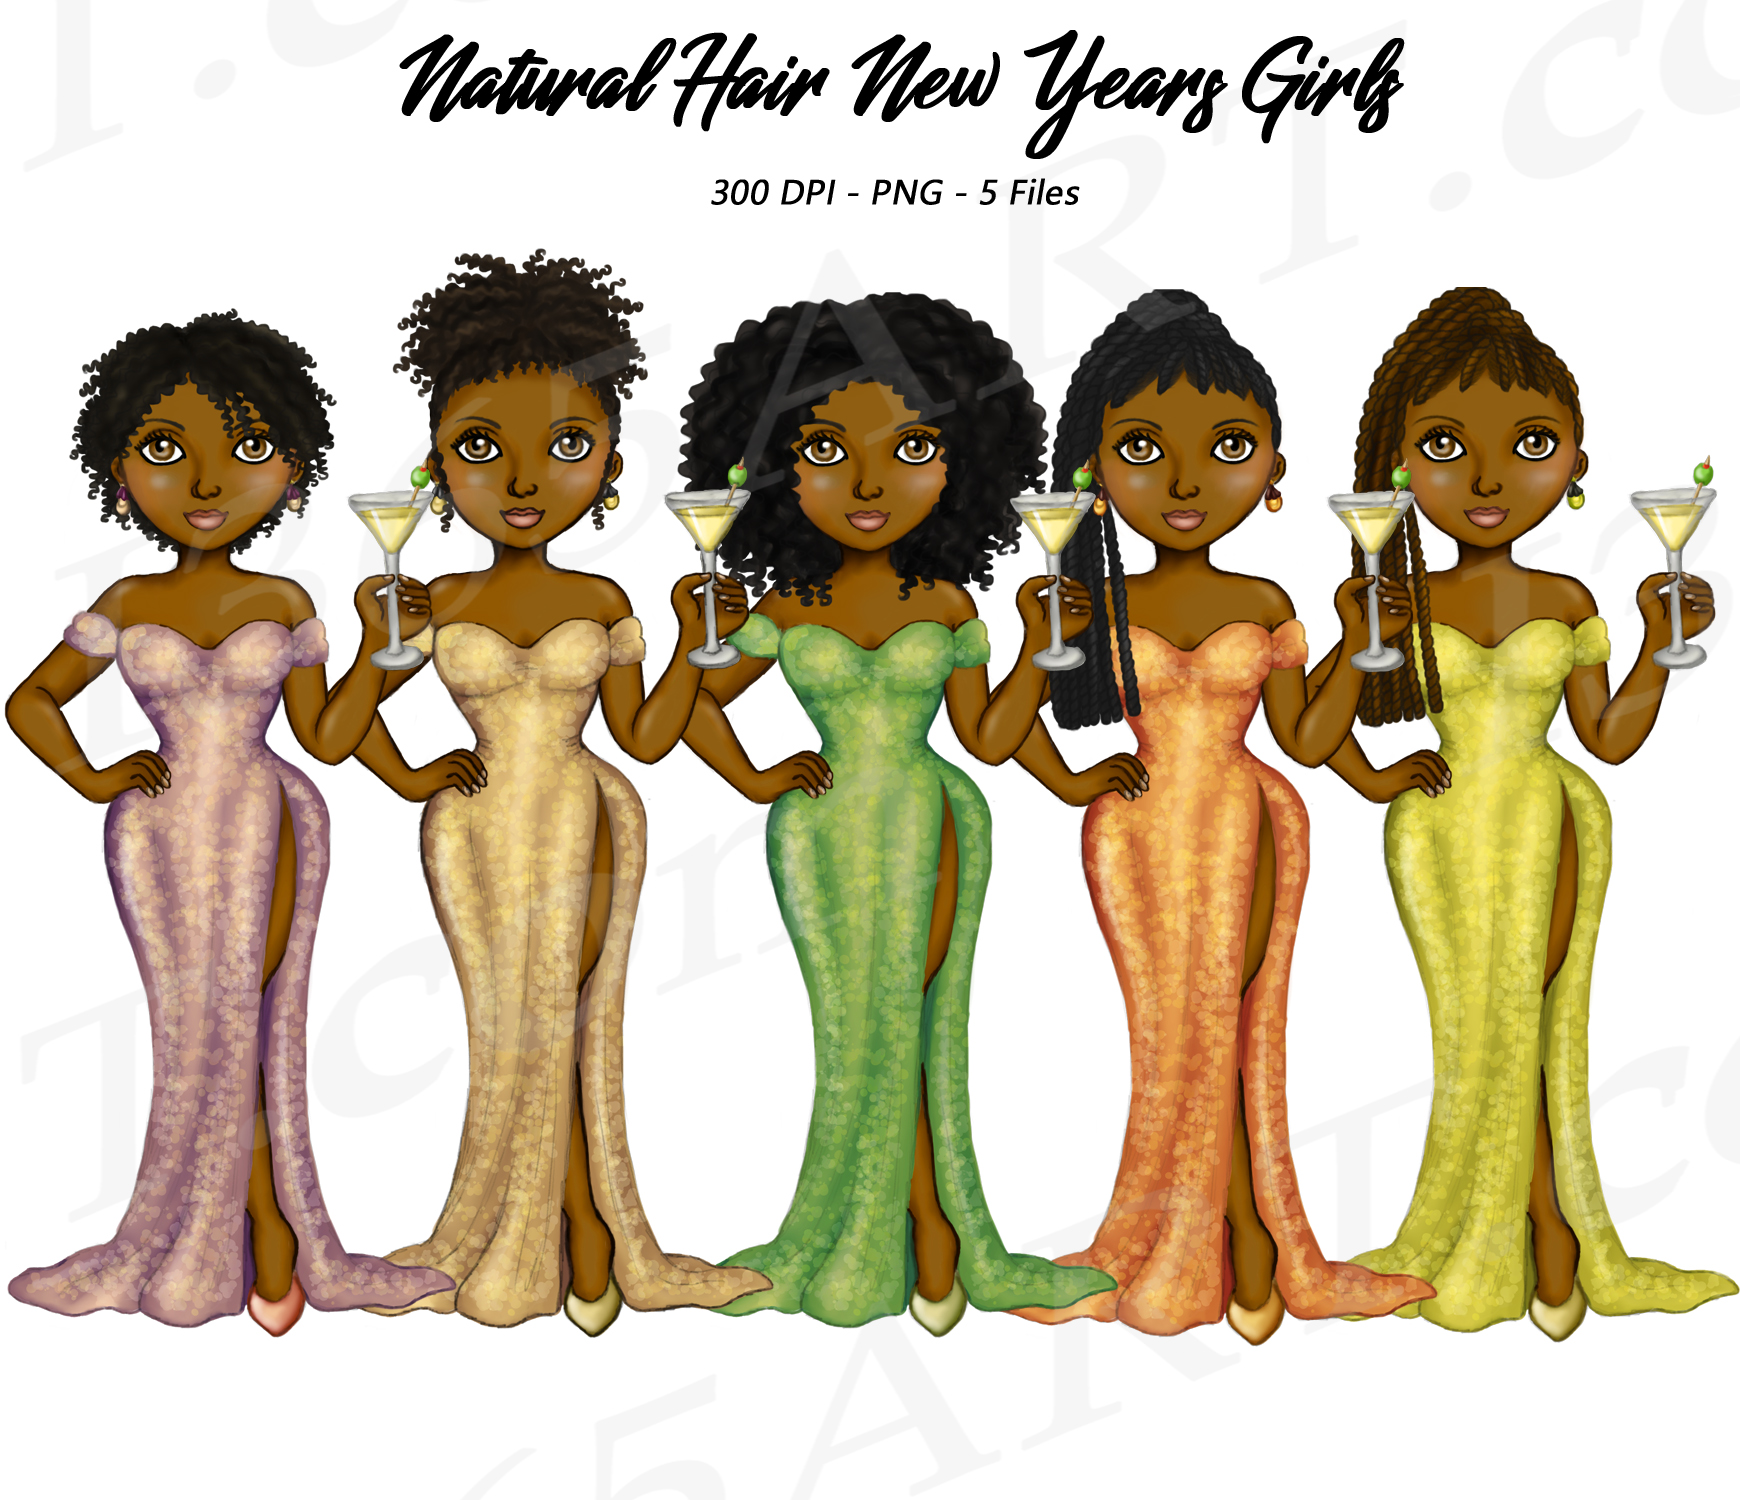 new years eve clipart natural hair fashion dolls i 365 art new years eve clipart natural hair fashion dolls